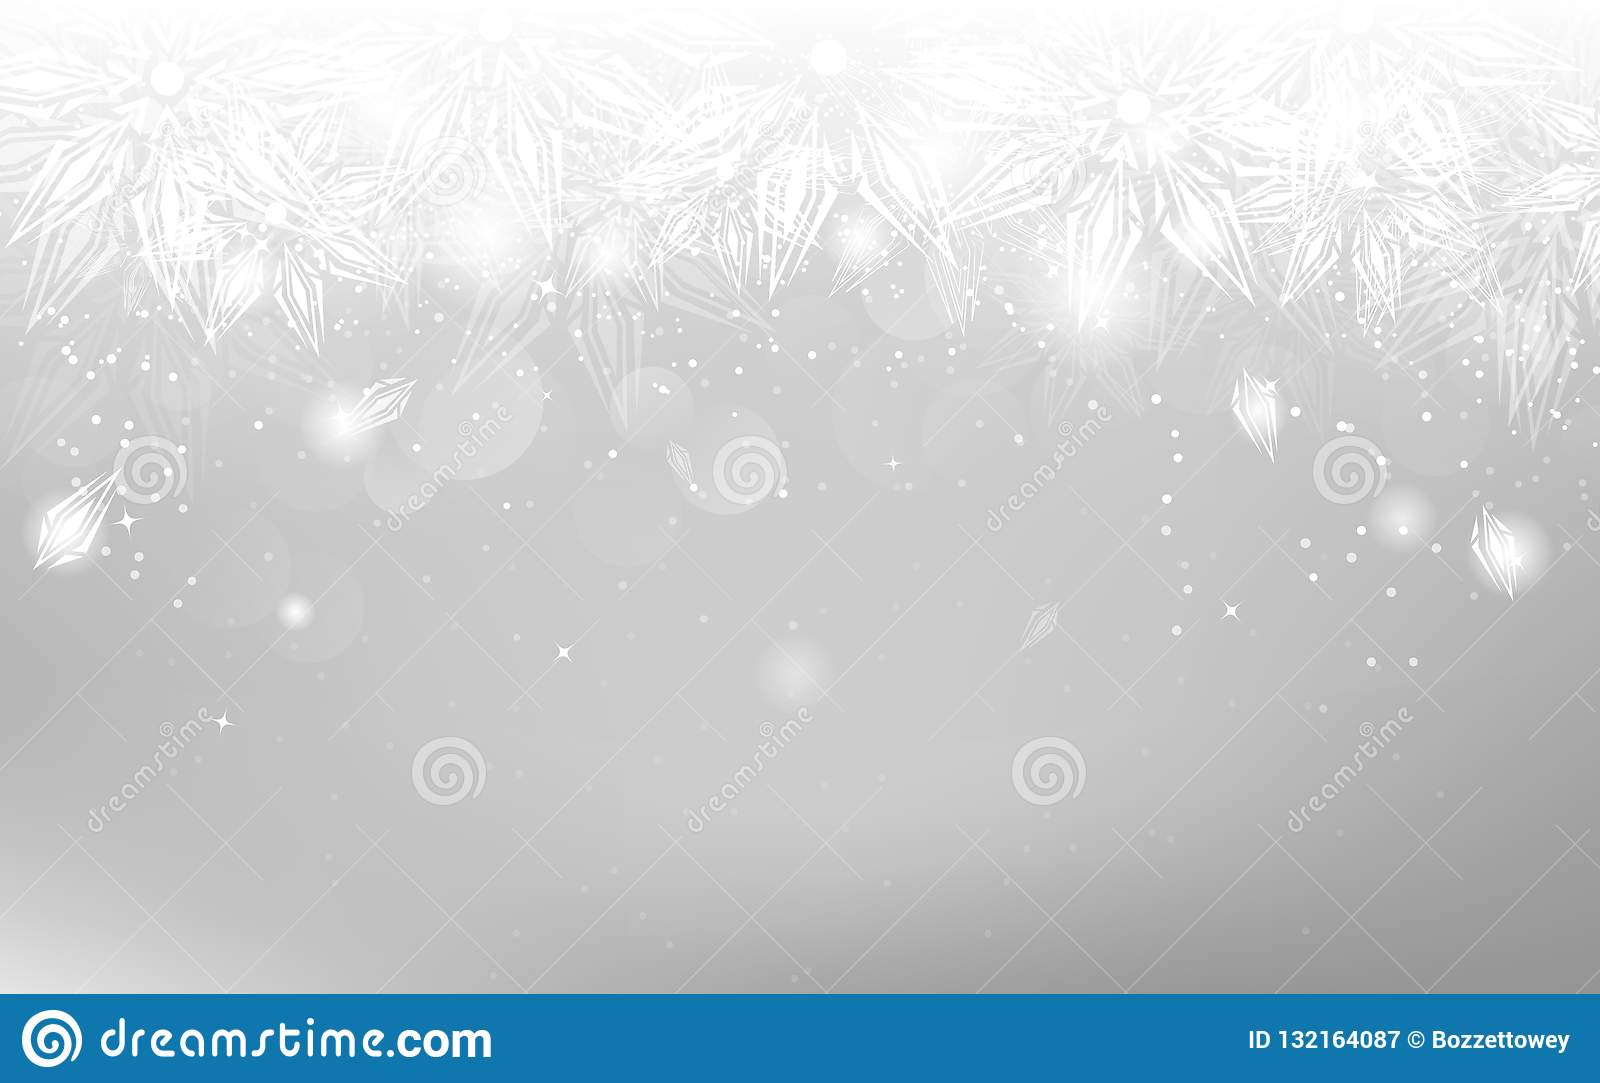 Elegant Christmas Background With Snowflakes Stock Vector: Snowflakes Silver, Christmas Winter Holiday, Elegant